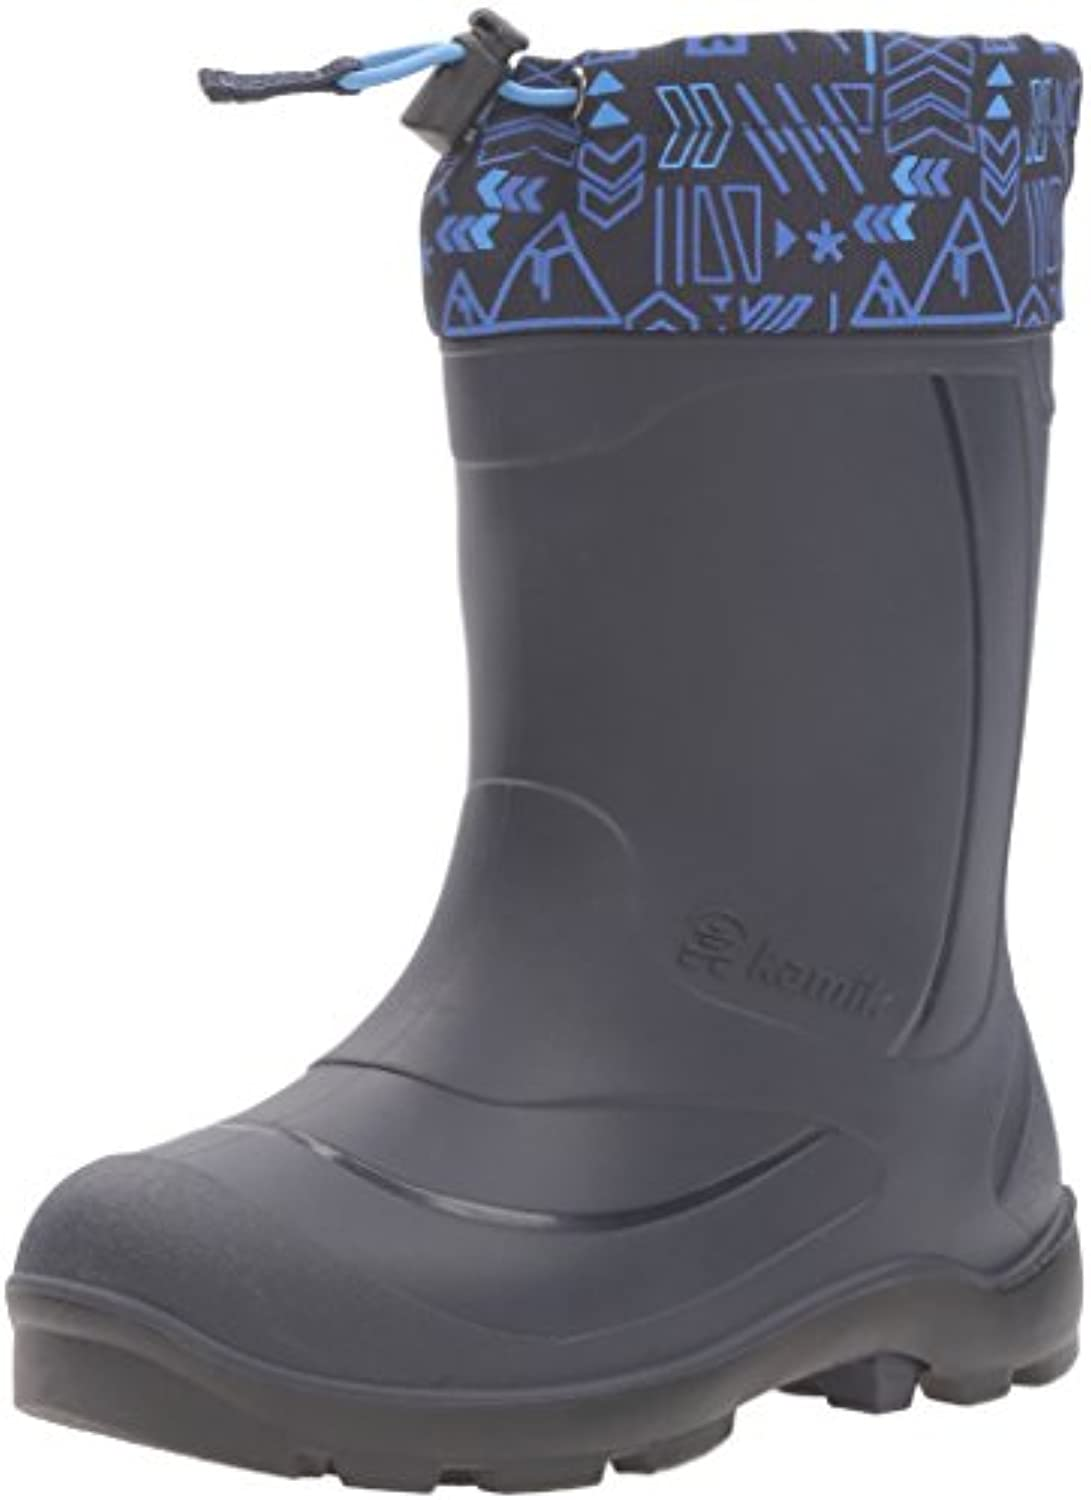 Kamik Snobuster2 Snow Boot  Charcoal/Lime  1 M US Little Kid